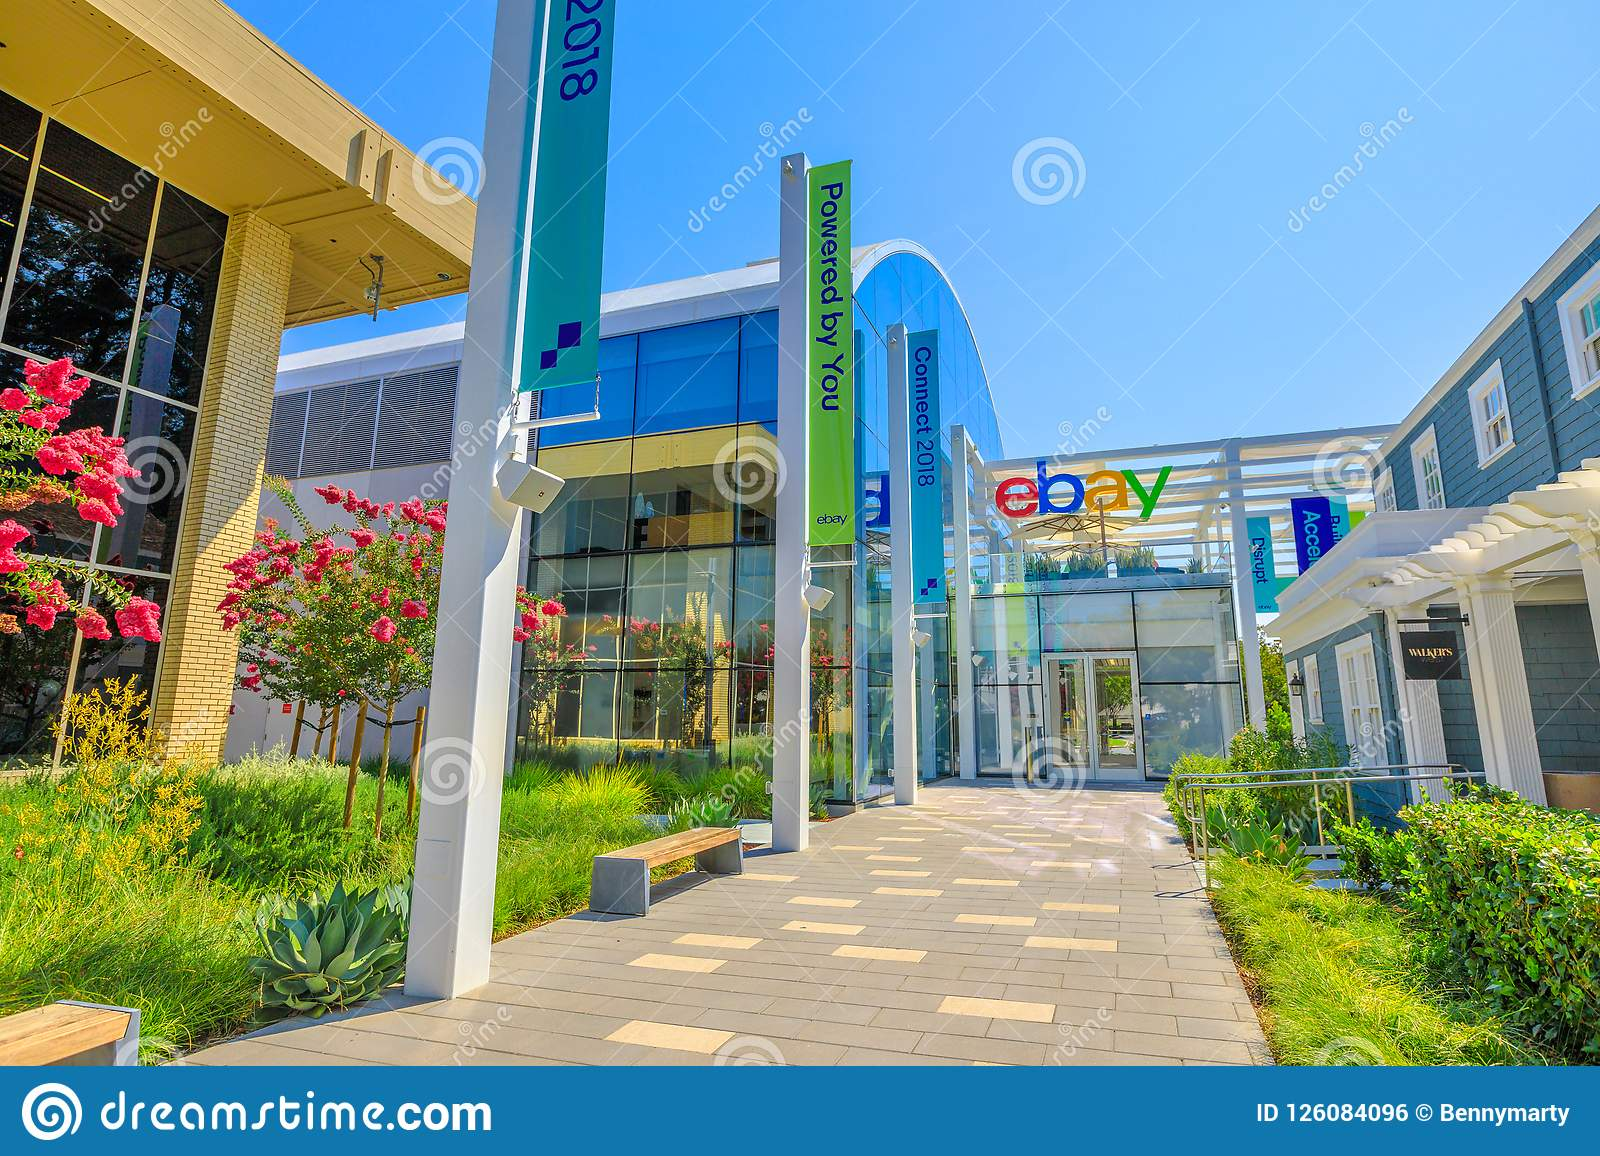 Ebay Campus Silicon Valley Editorial Photo Image Of Marketplace